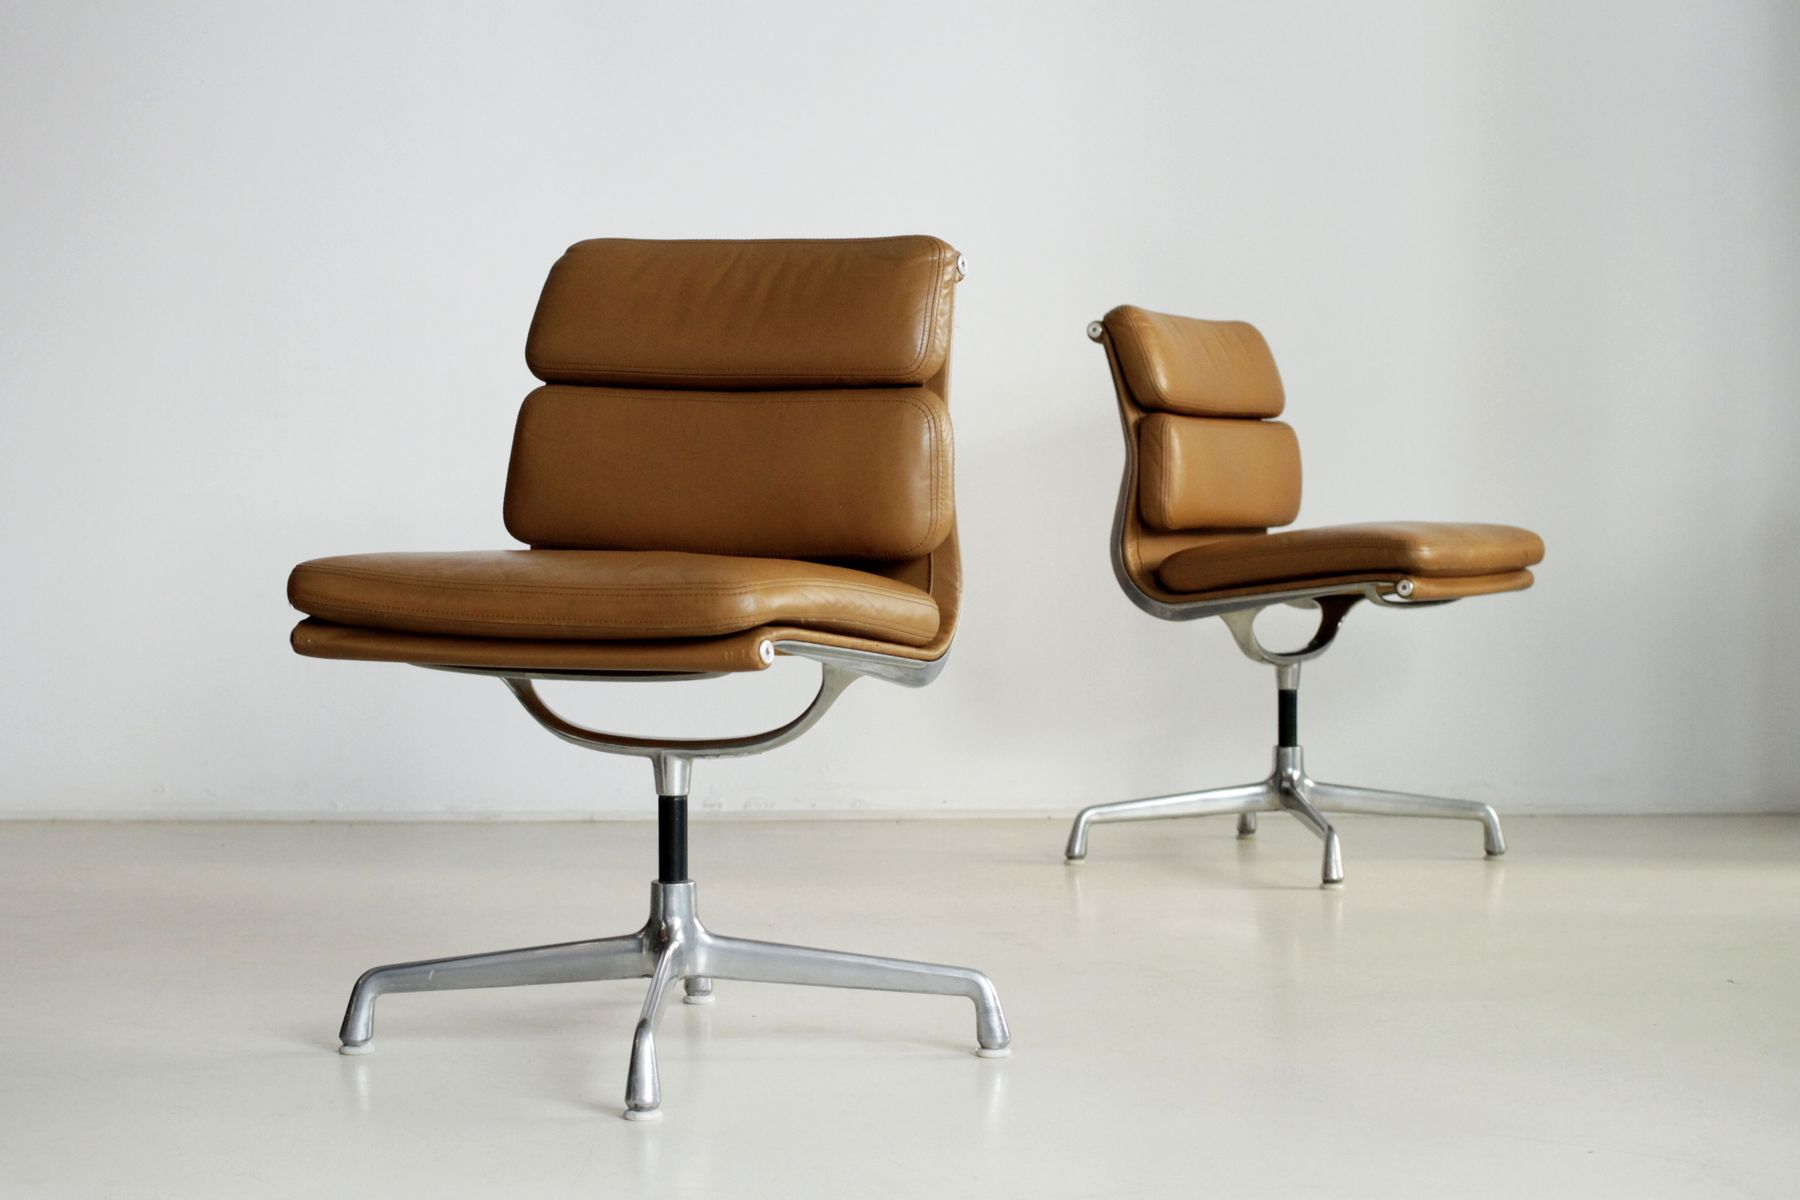 soft pad office chairs by charles eames for herman miller. Black Bedroom Furniture Sets. Home Design Ideas